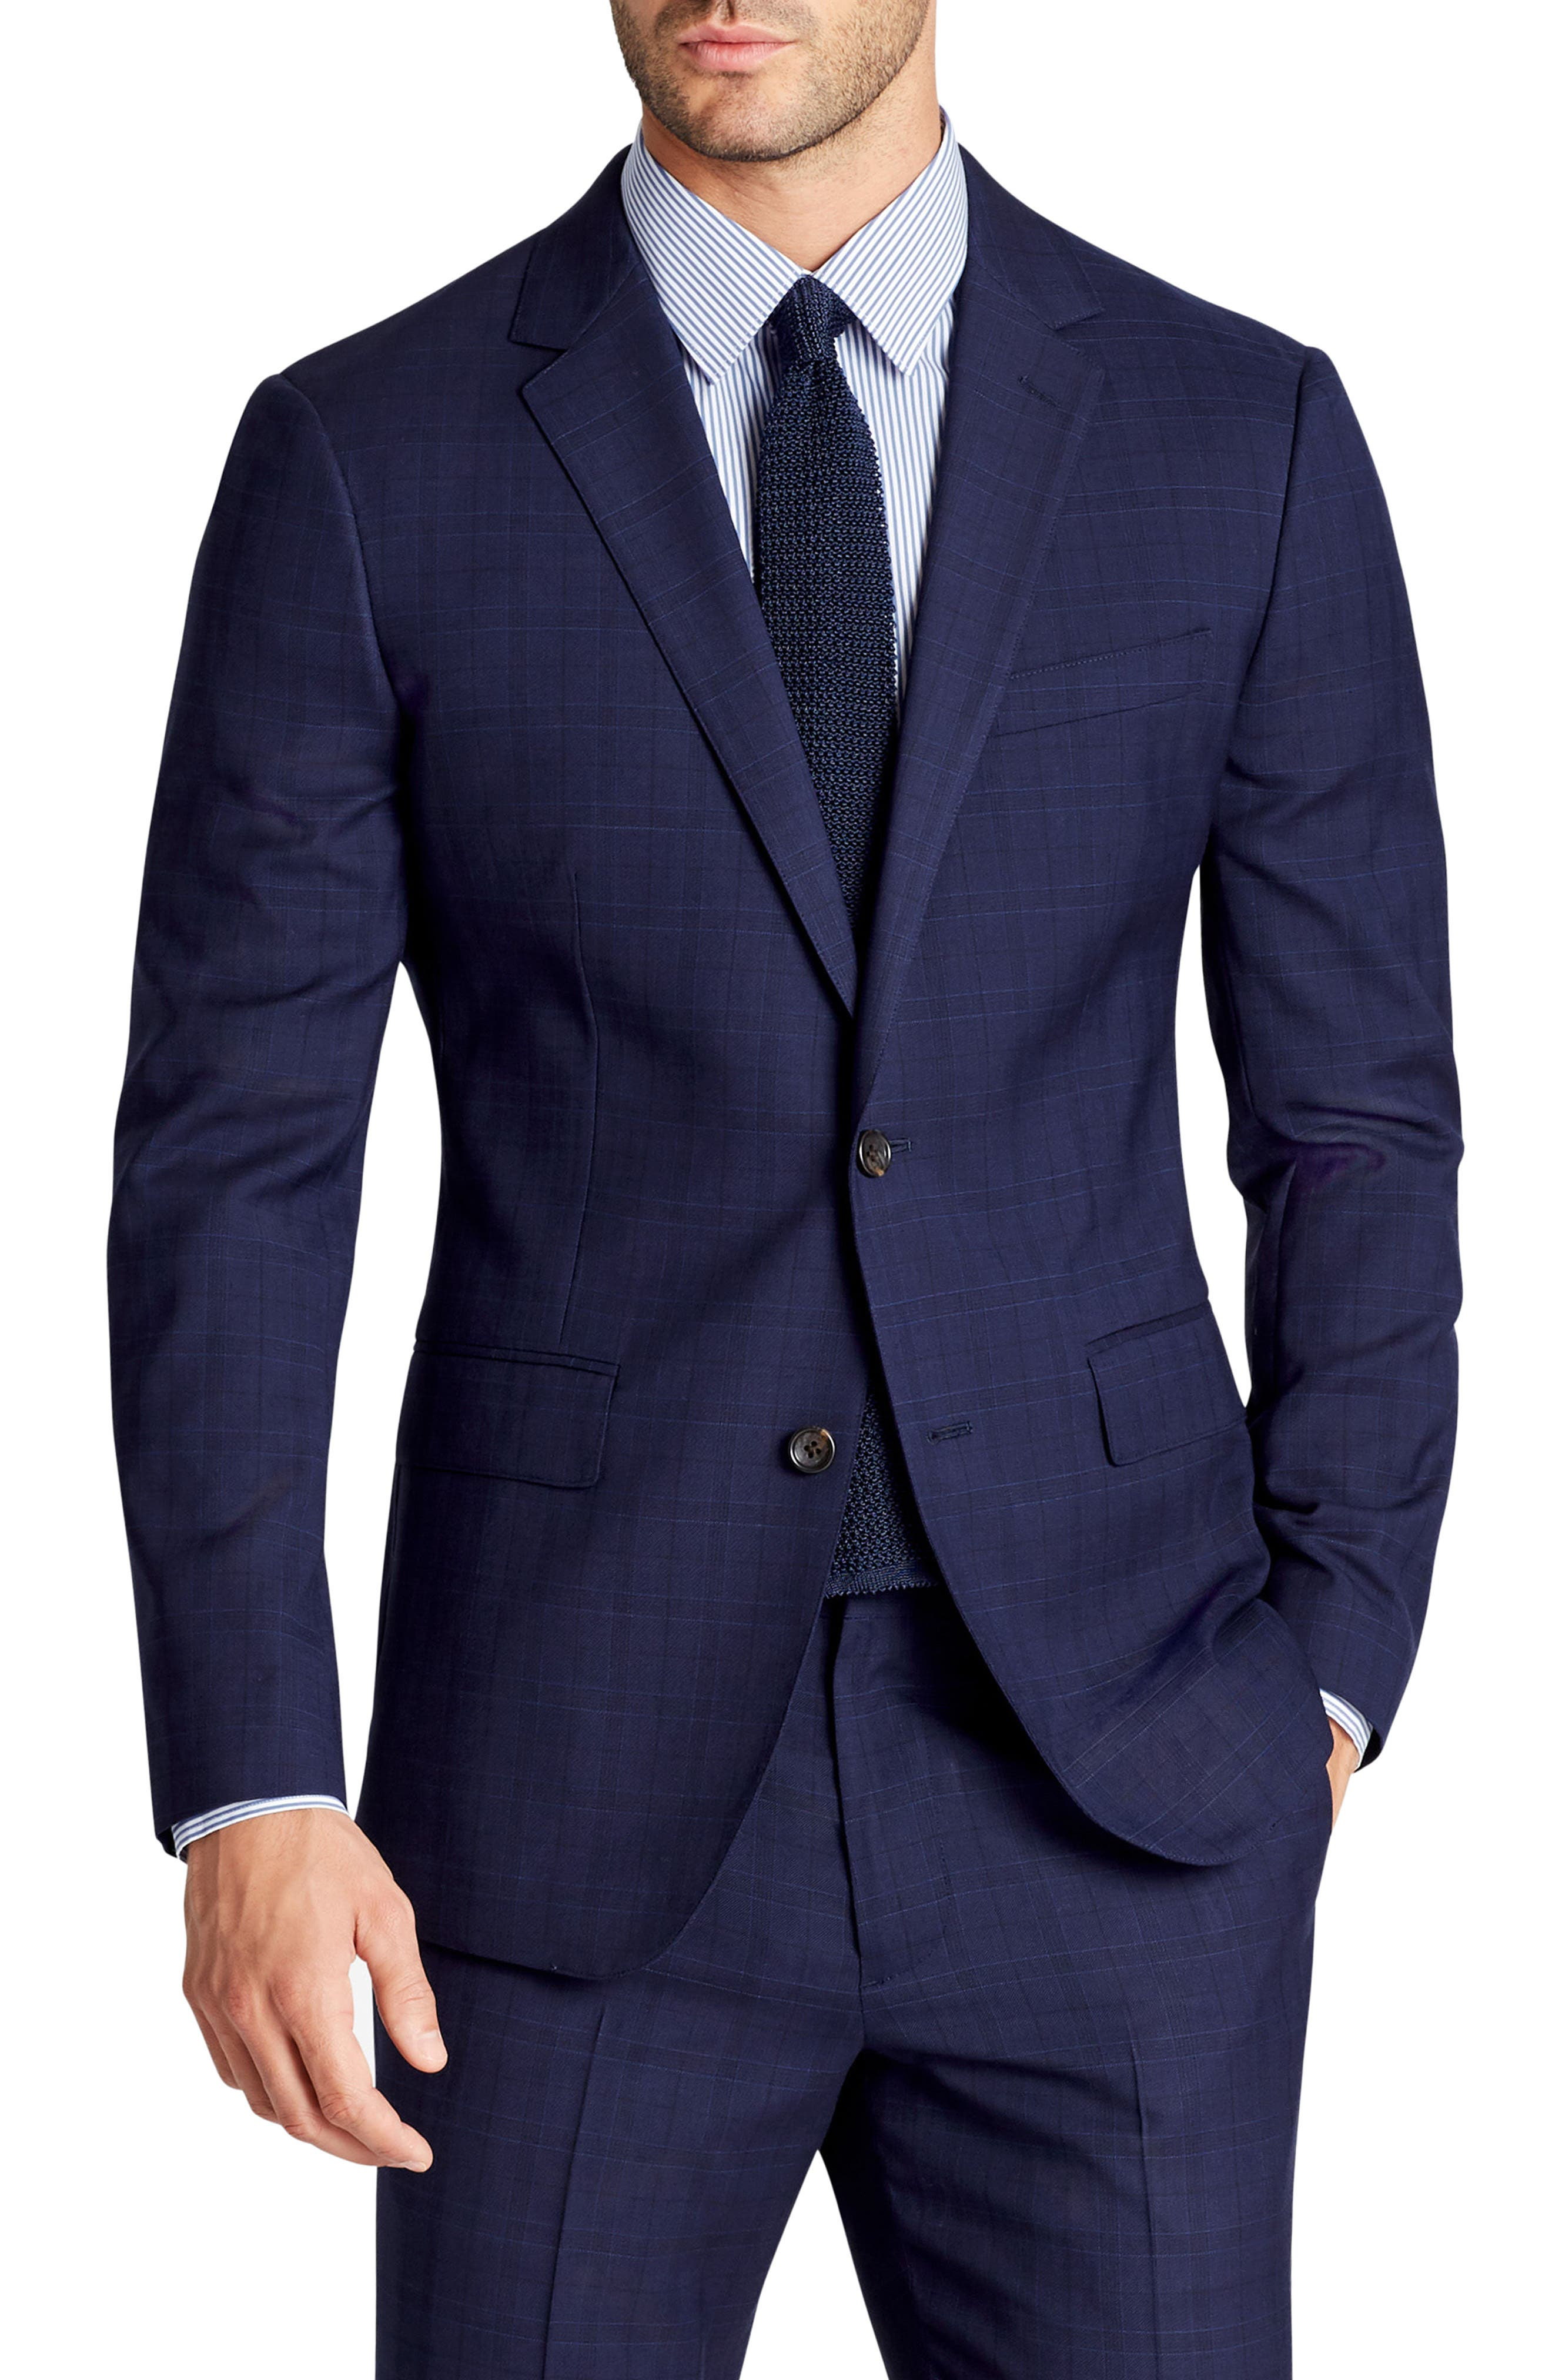 Bonobos Jetsetter Slim Fit Plaid Stretch Wool Sport Coat